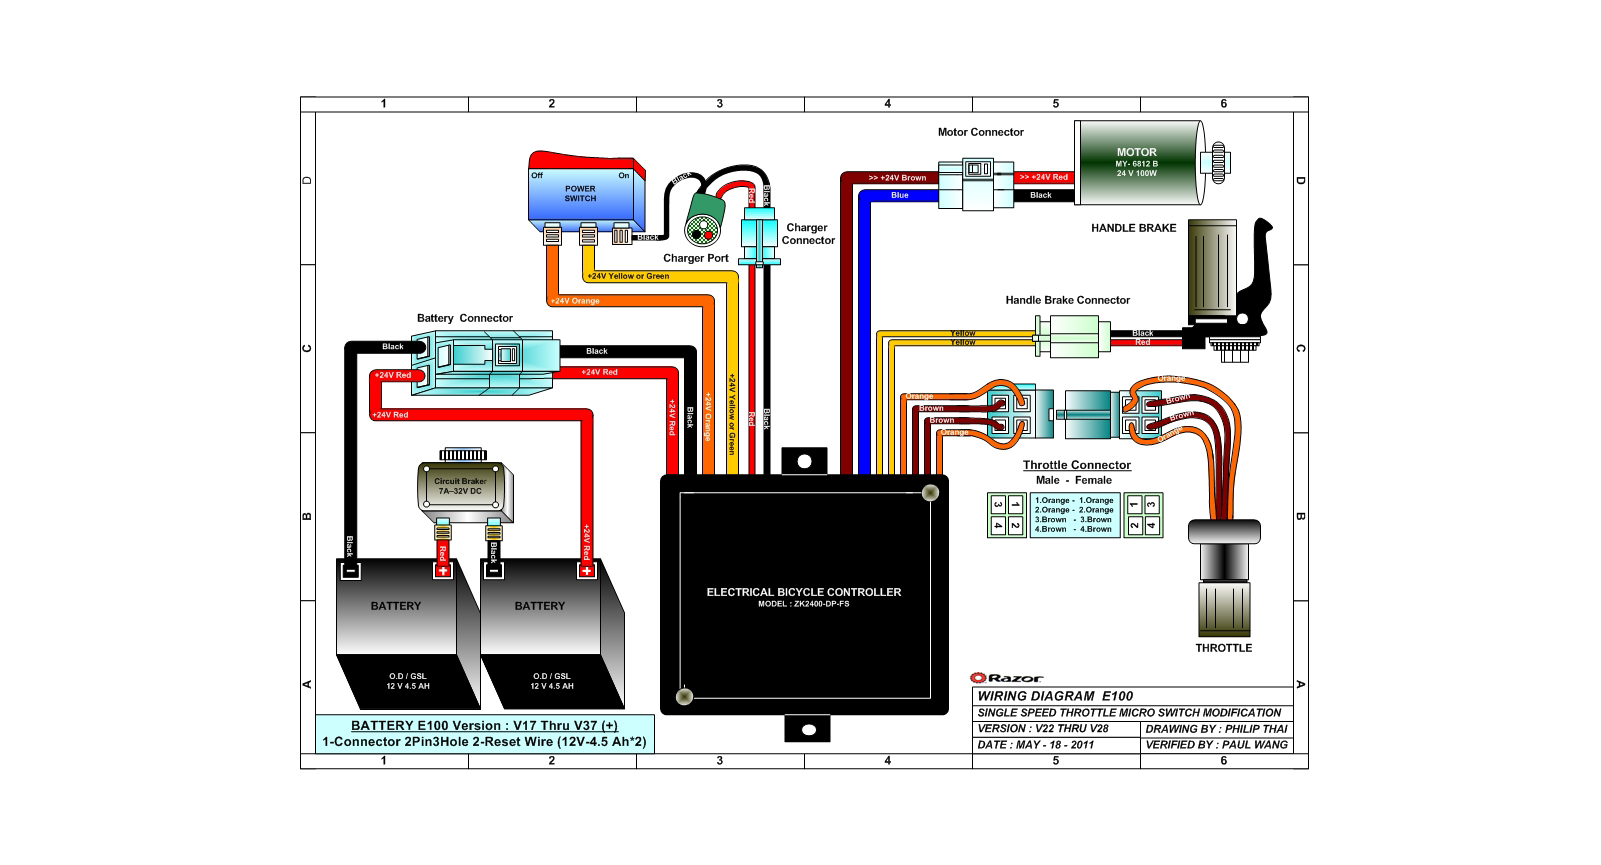 ... E100 (versions 22-26 & 27-28) Wiring Diagram ...